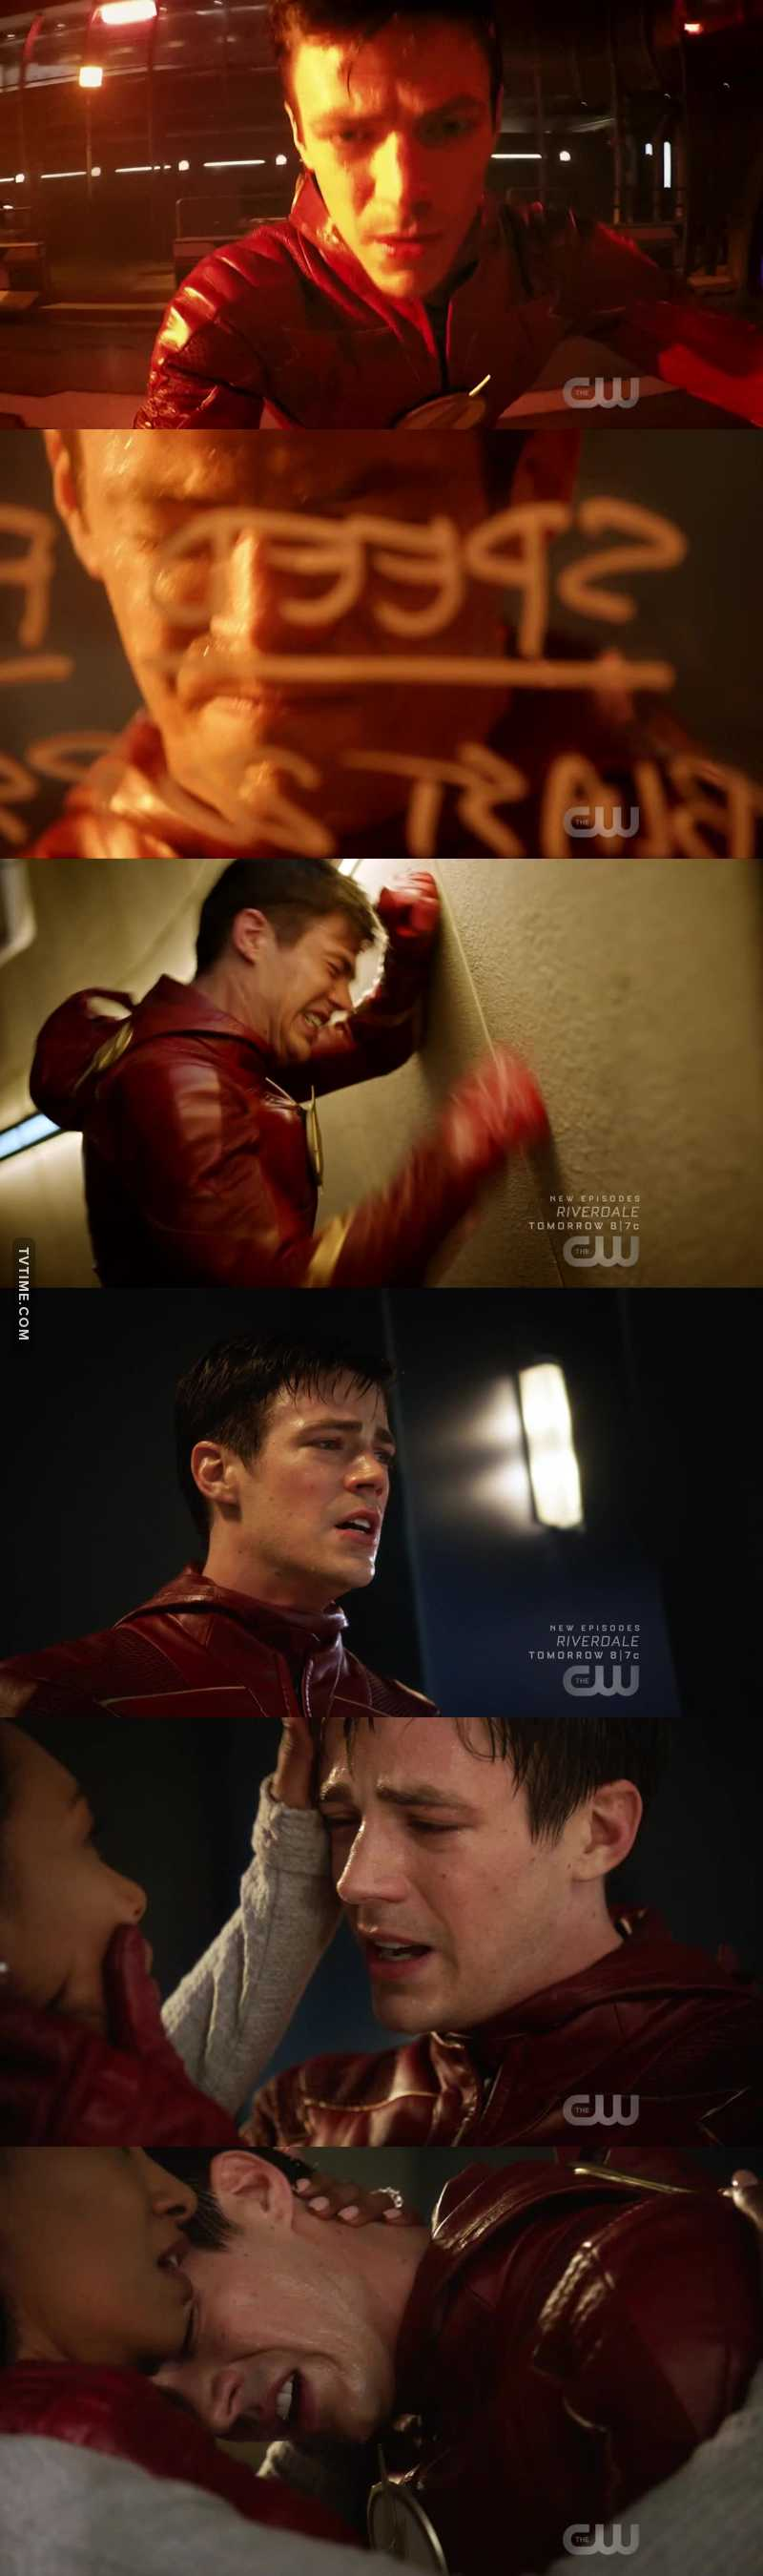 okay but grant's performance for this episode was amAzing and totally well showcased